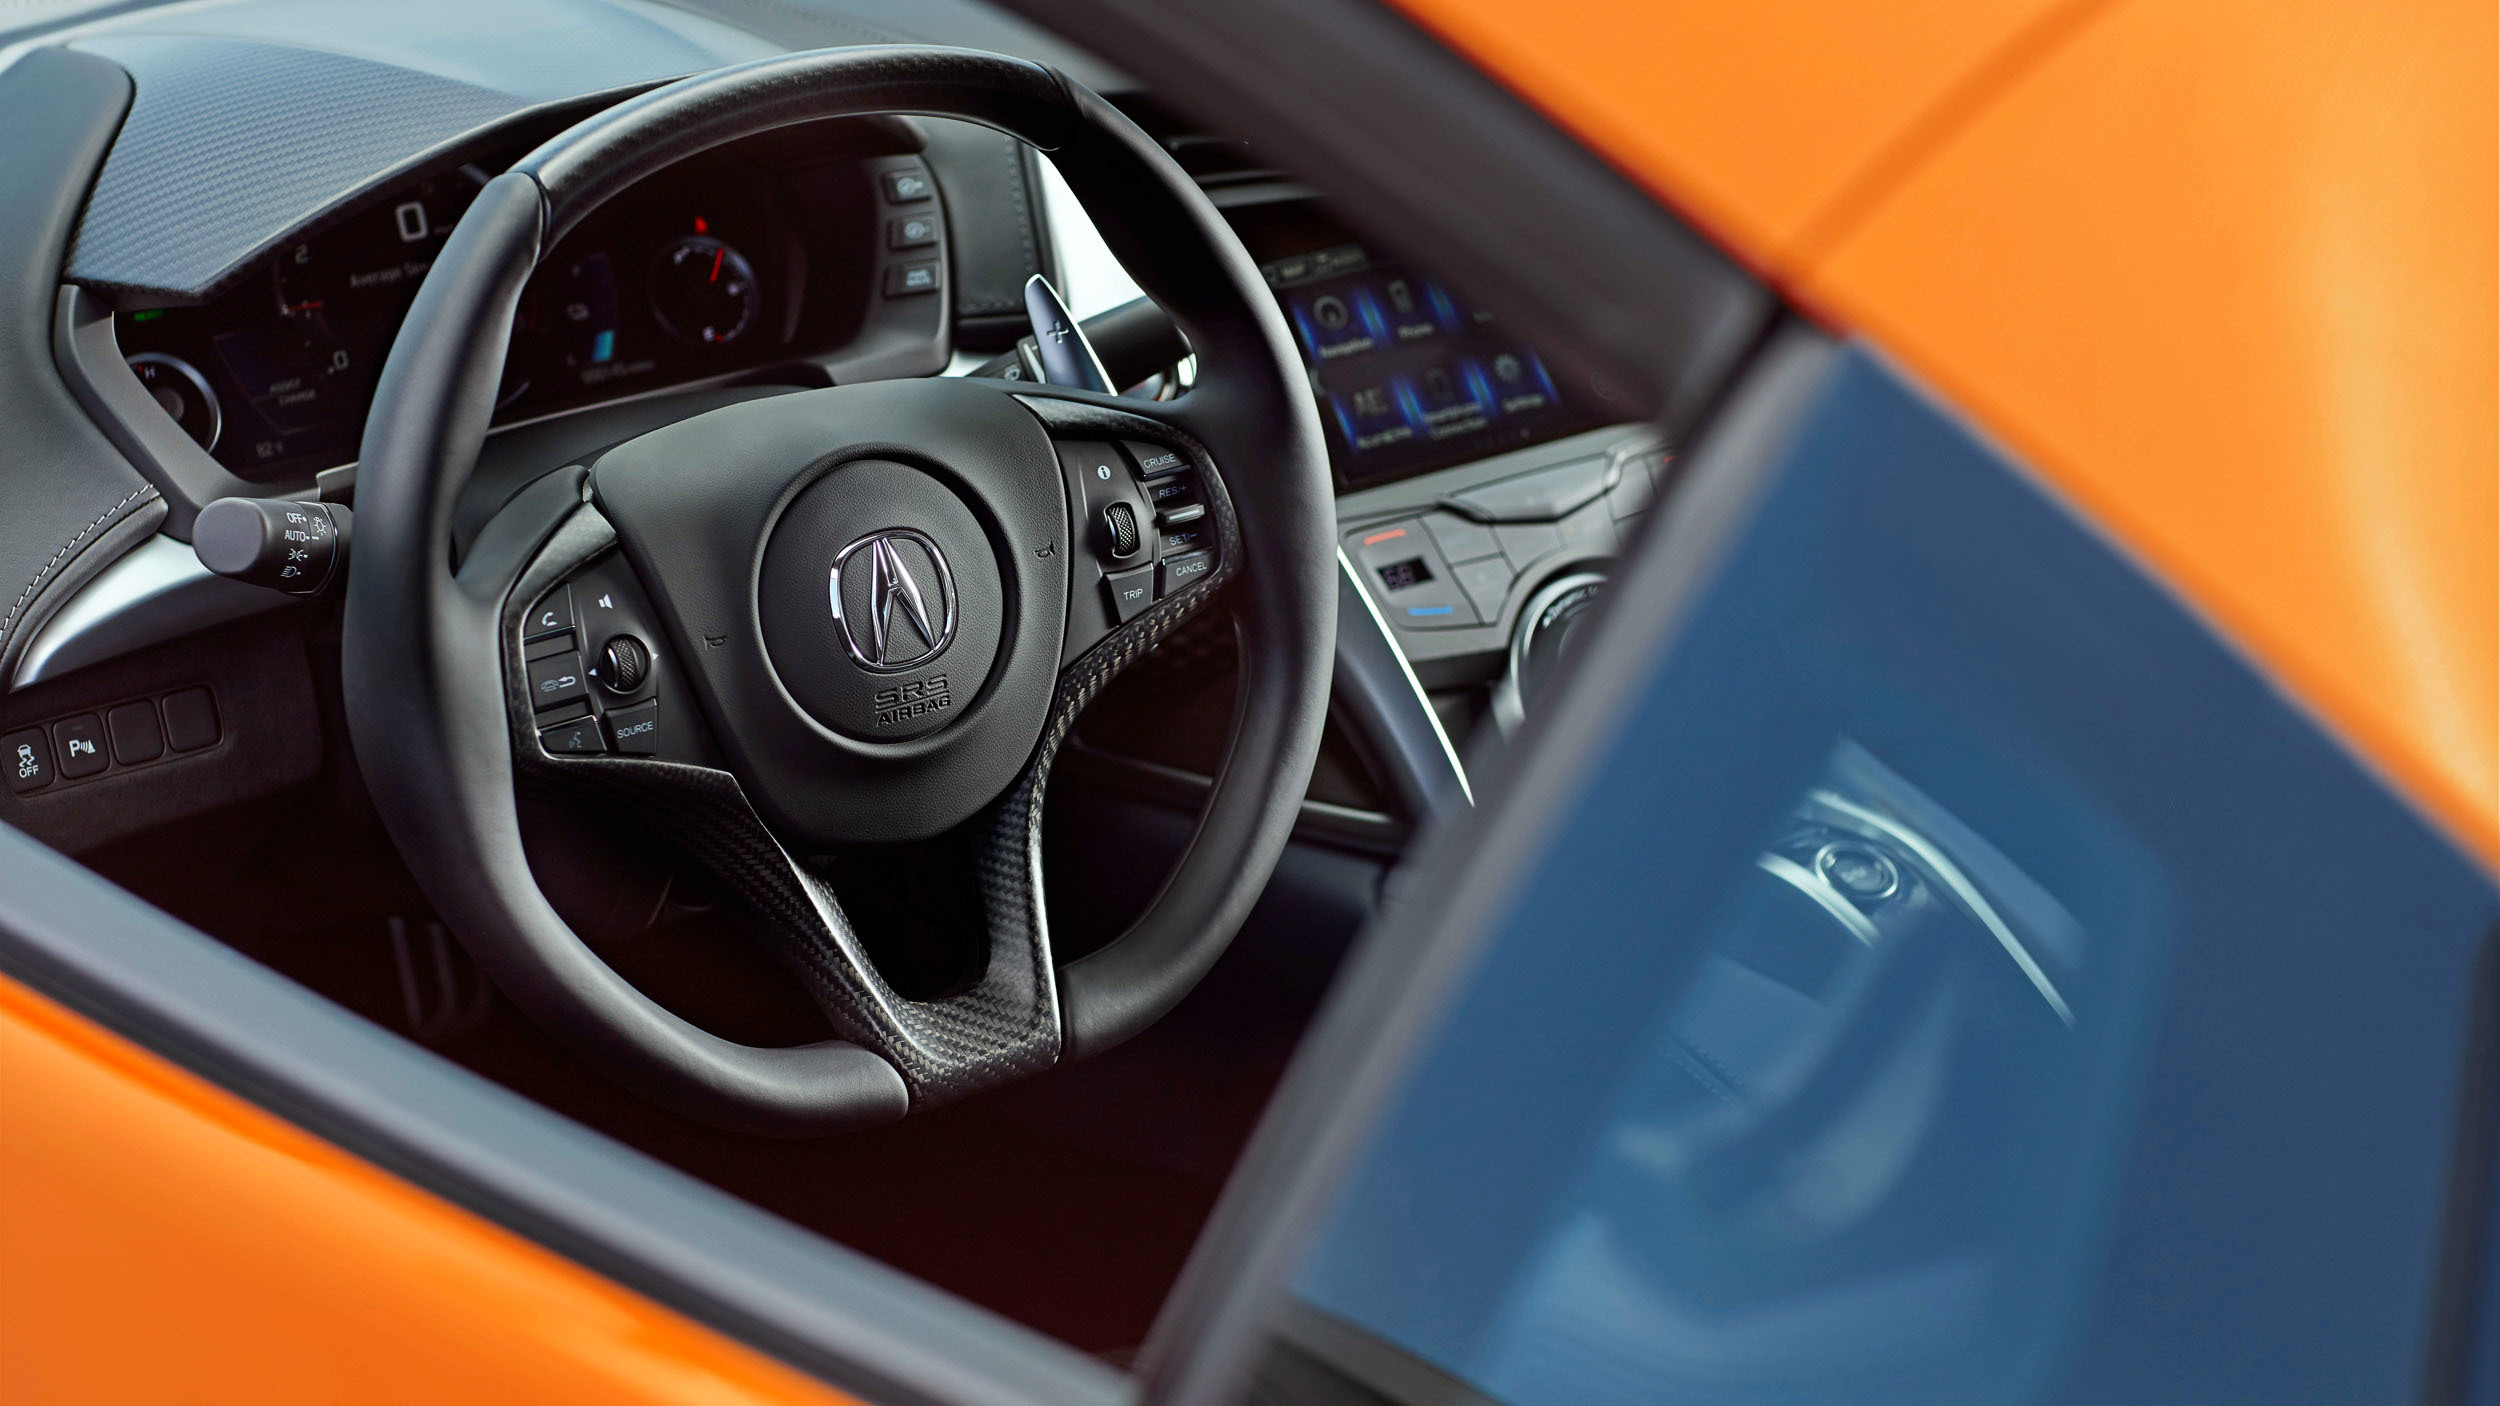 Acura NSX 2019 Features Many Upgrades